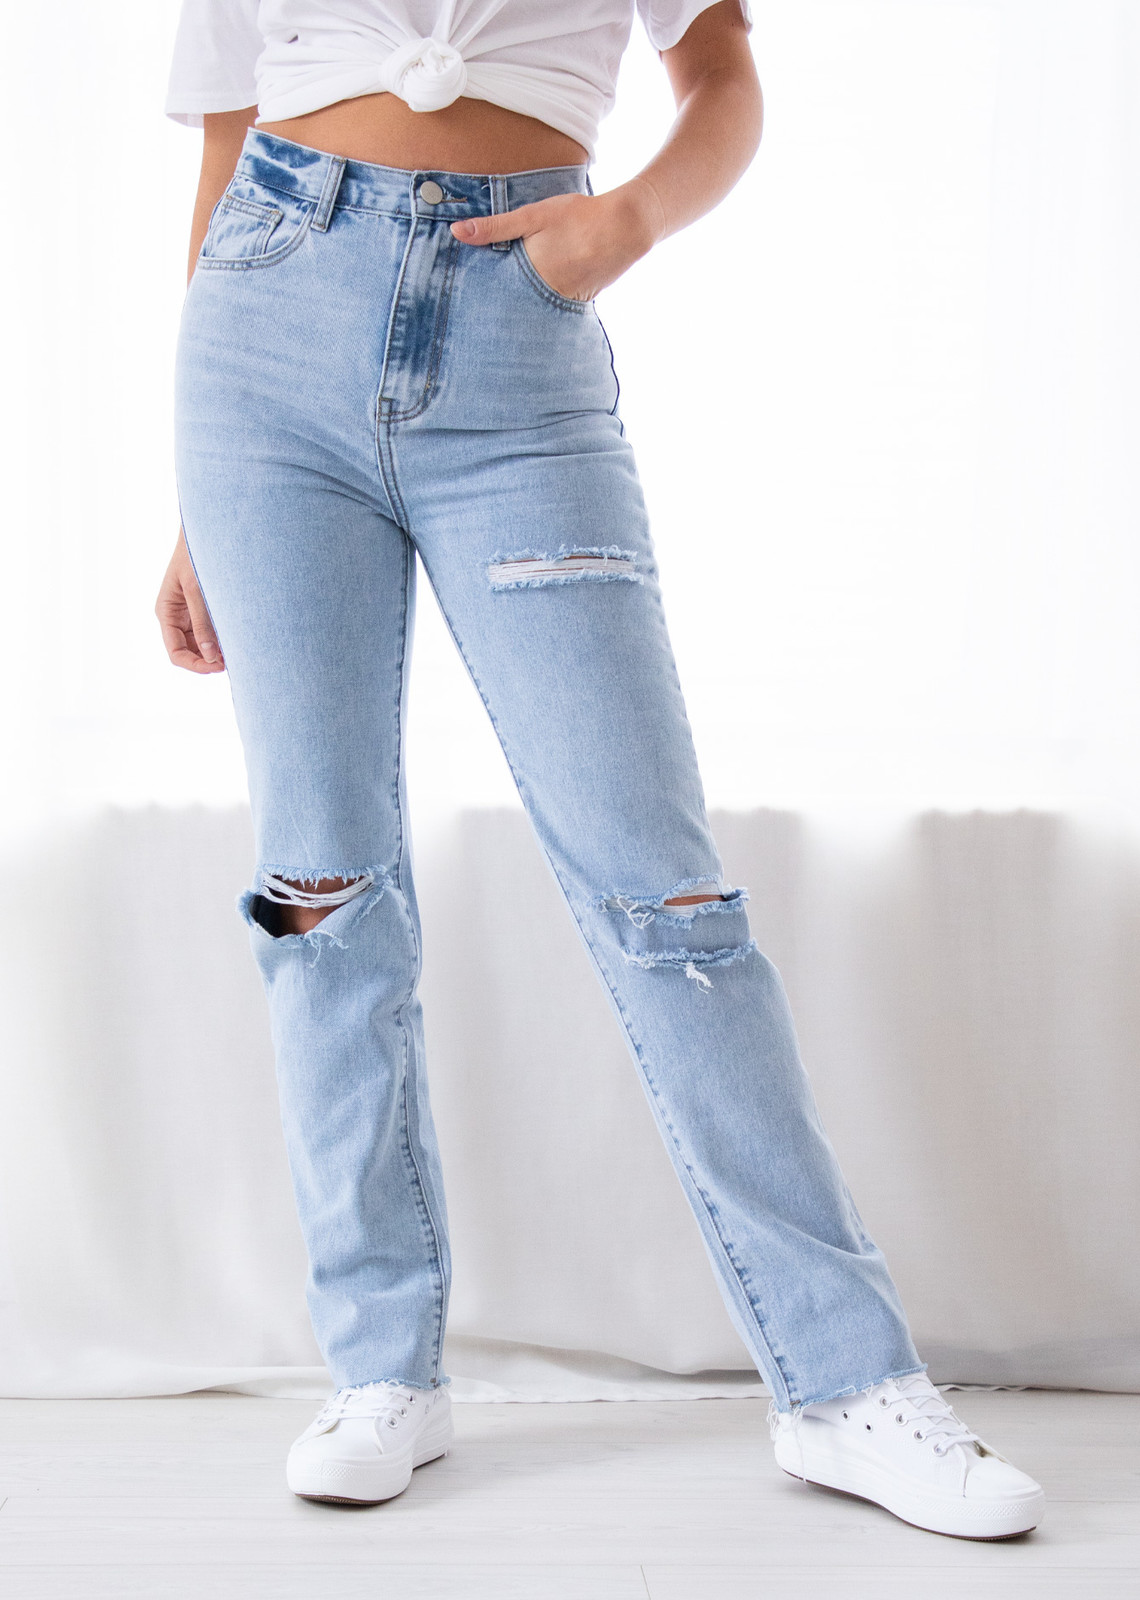 Cut out jeans Lotte